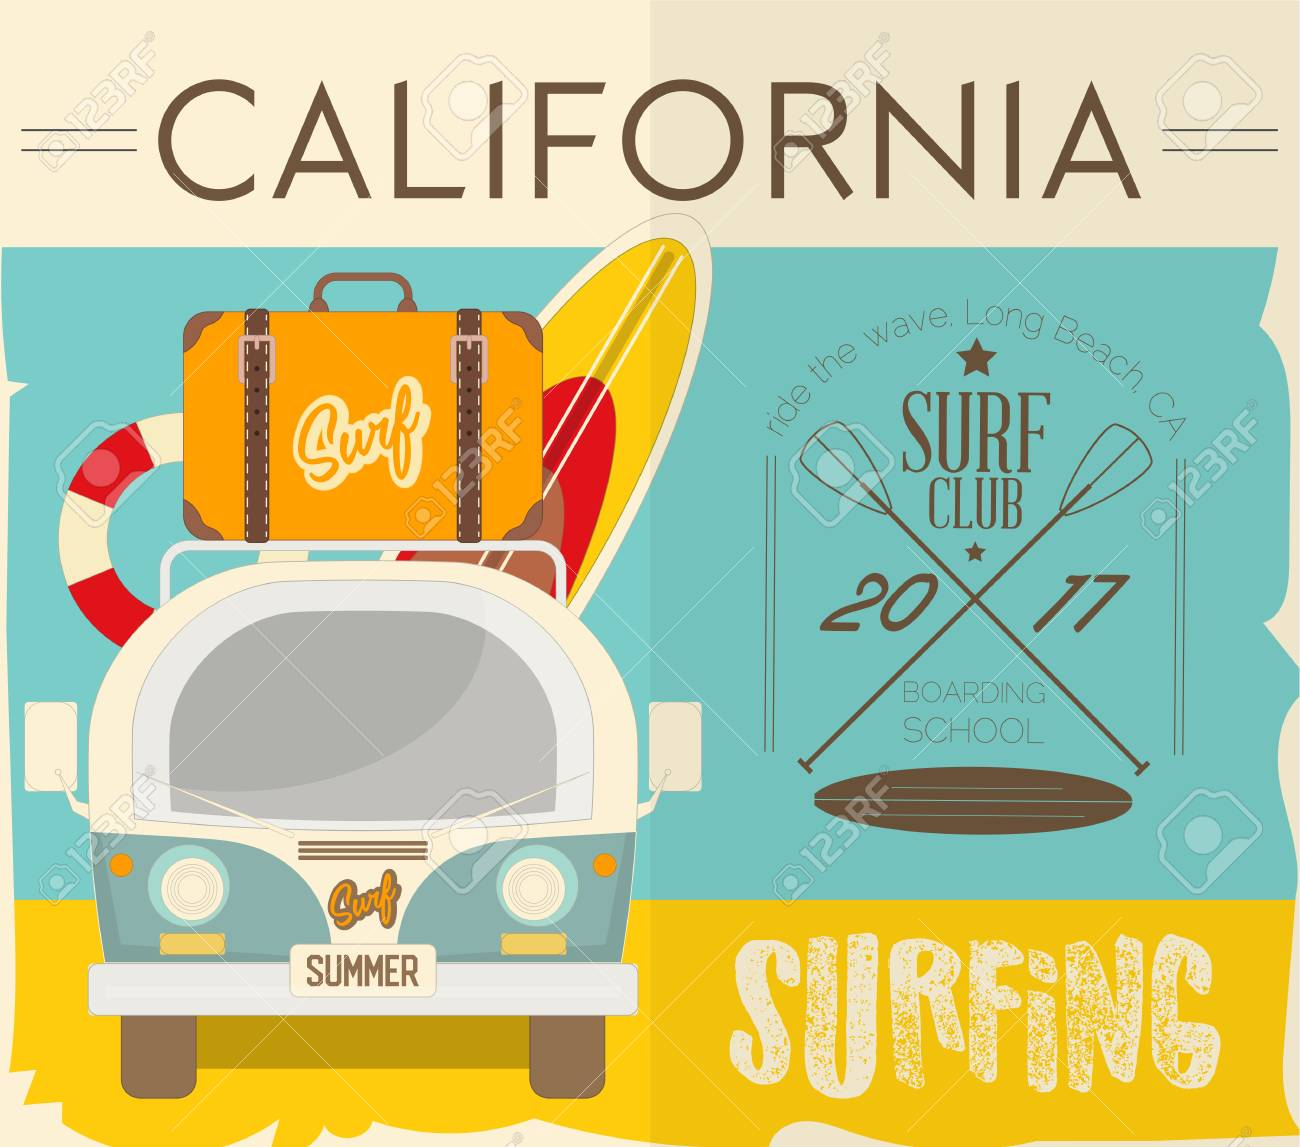 Surf Retro Hawaii Poster Mini Van With Surfboards And Vintage